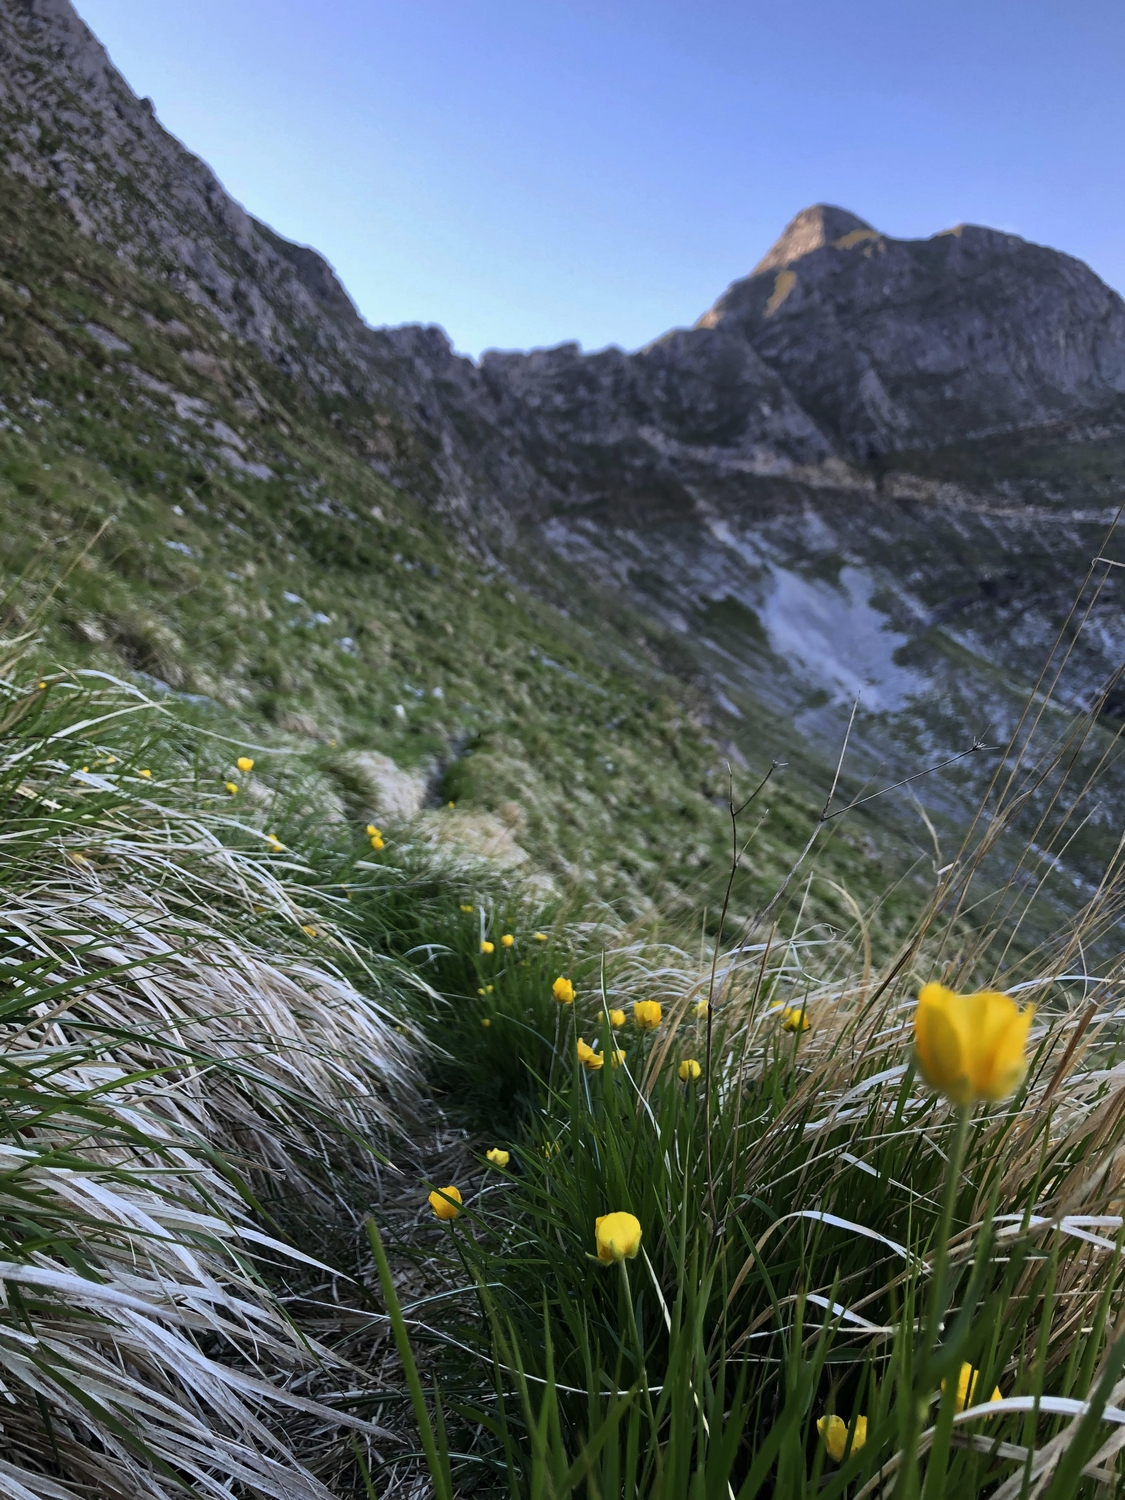 Paleo Grass Apuan Alps Monte Sella